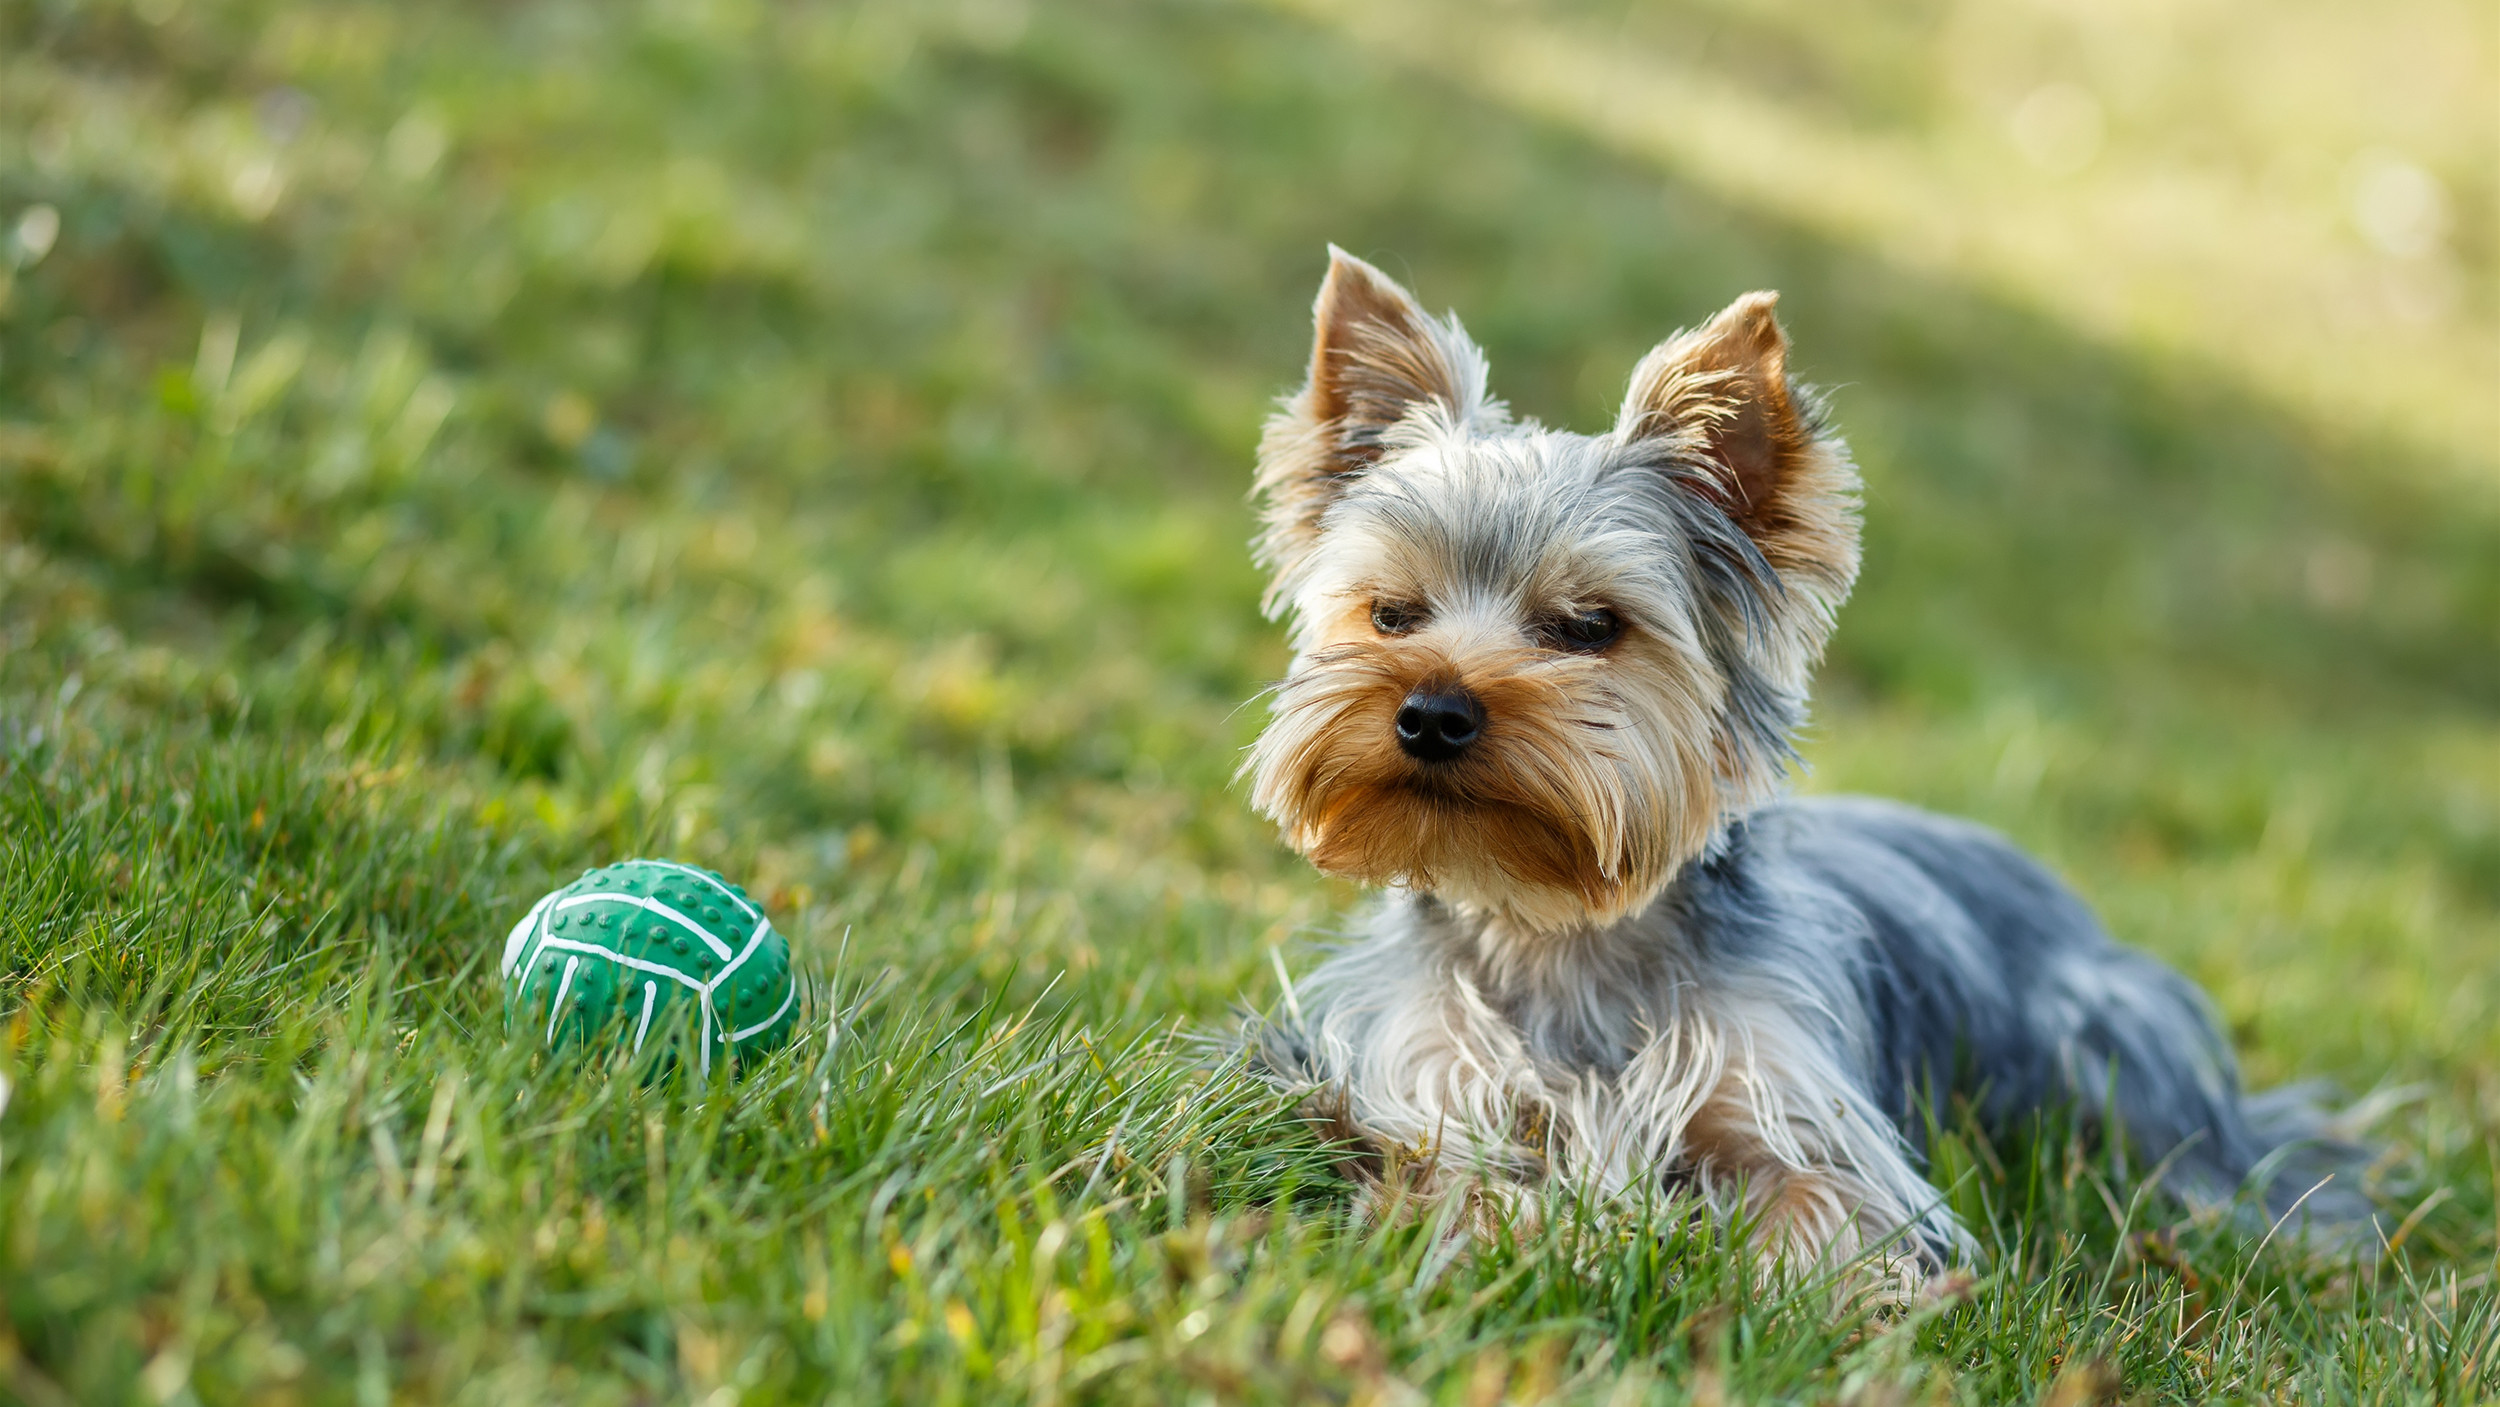 Dog Proof Backyard  Dog eating the grass 6 ways to pet proof your lawn and